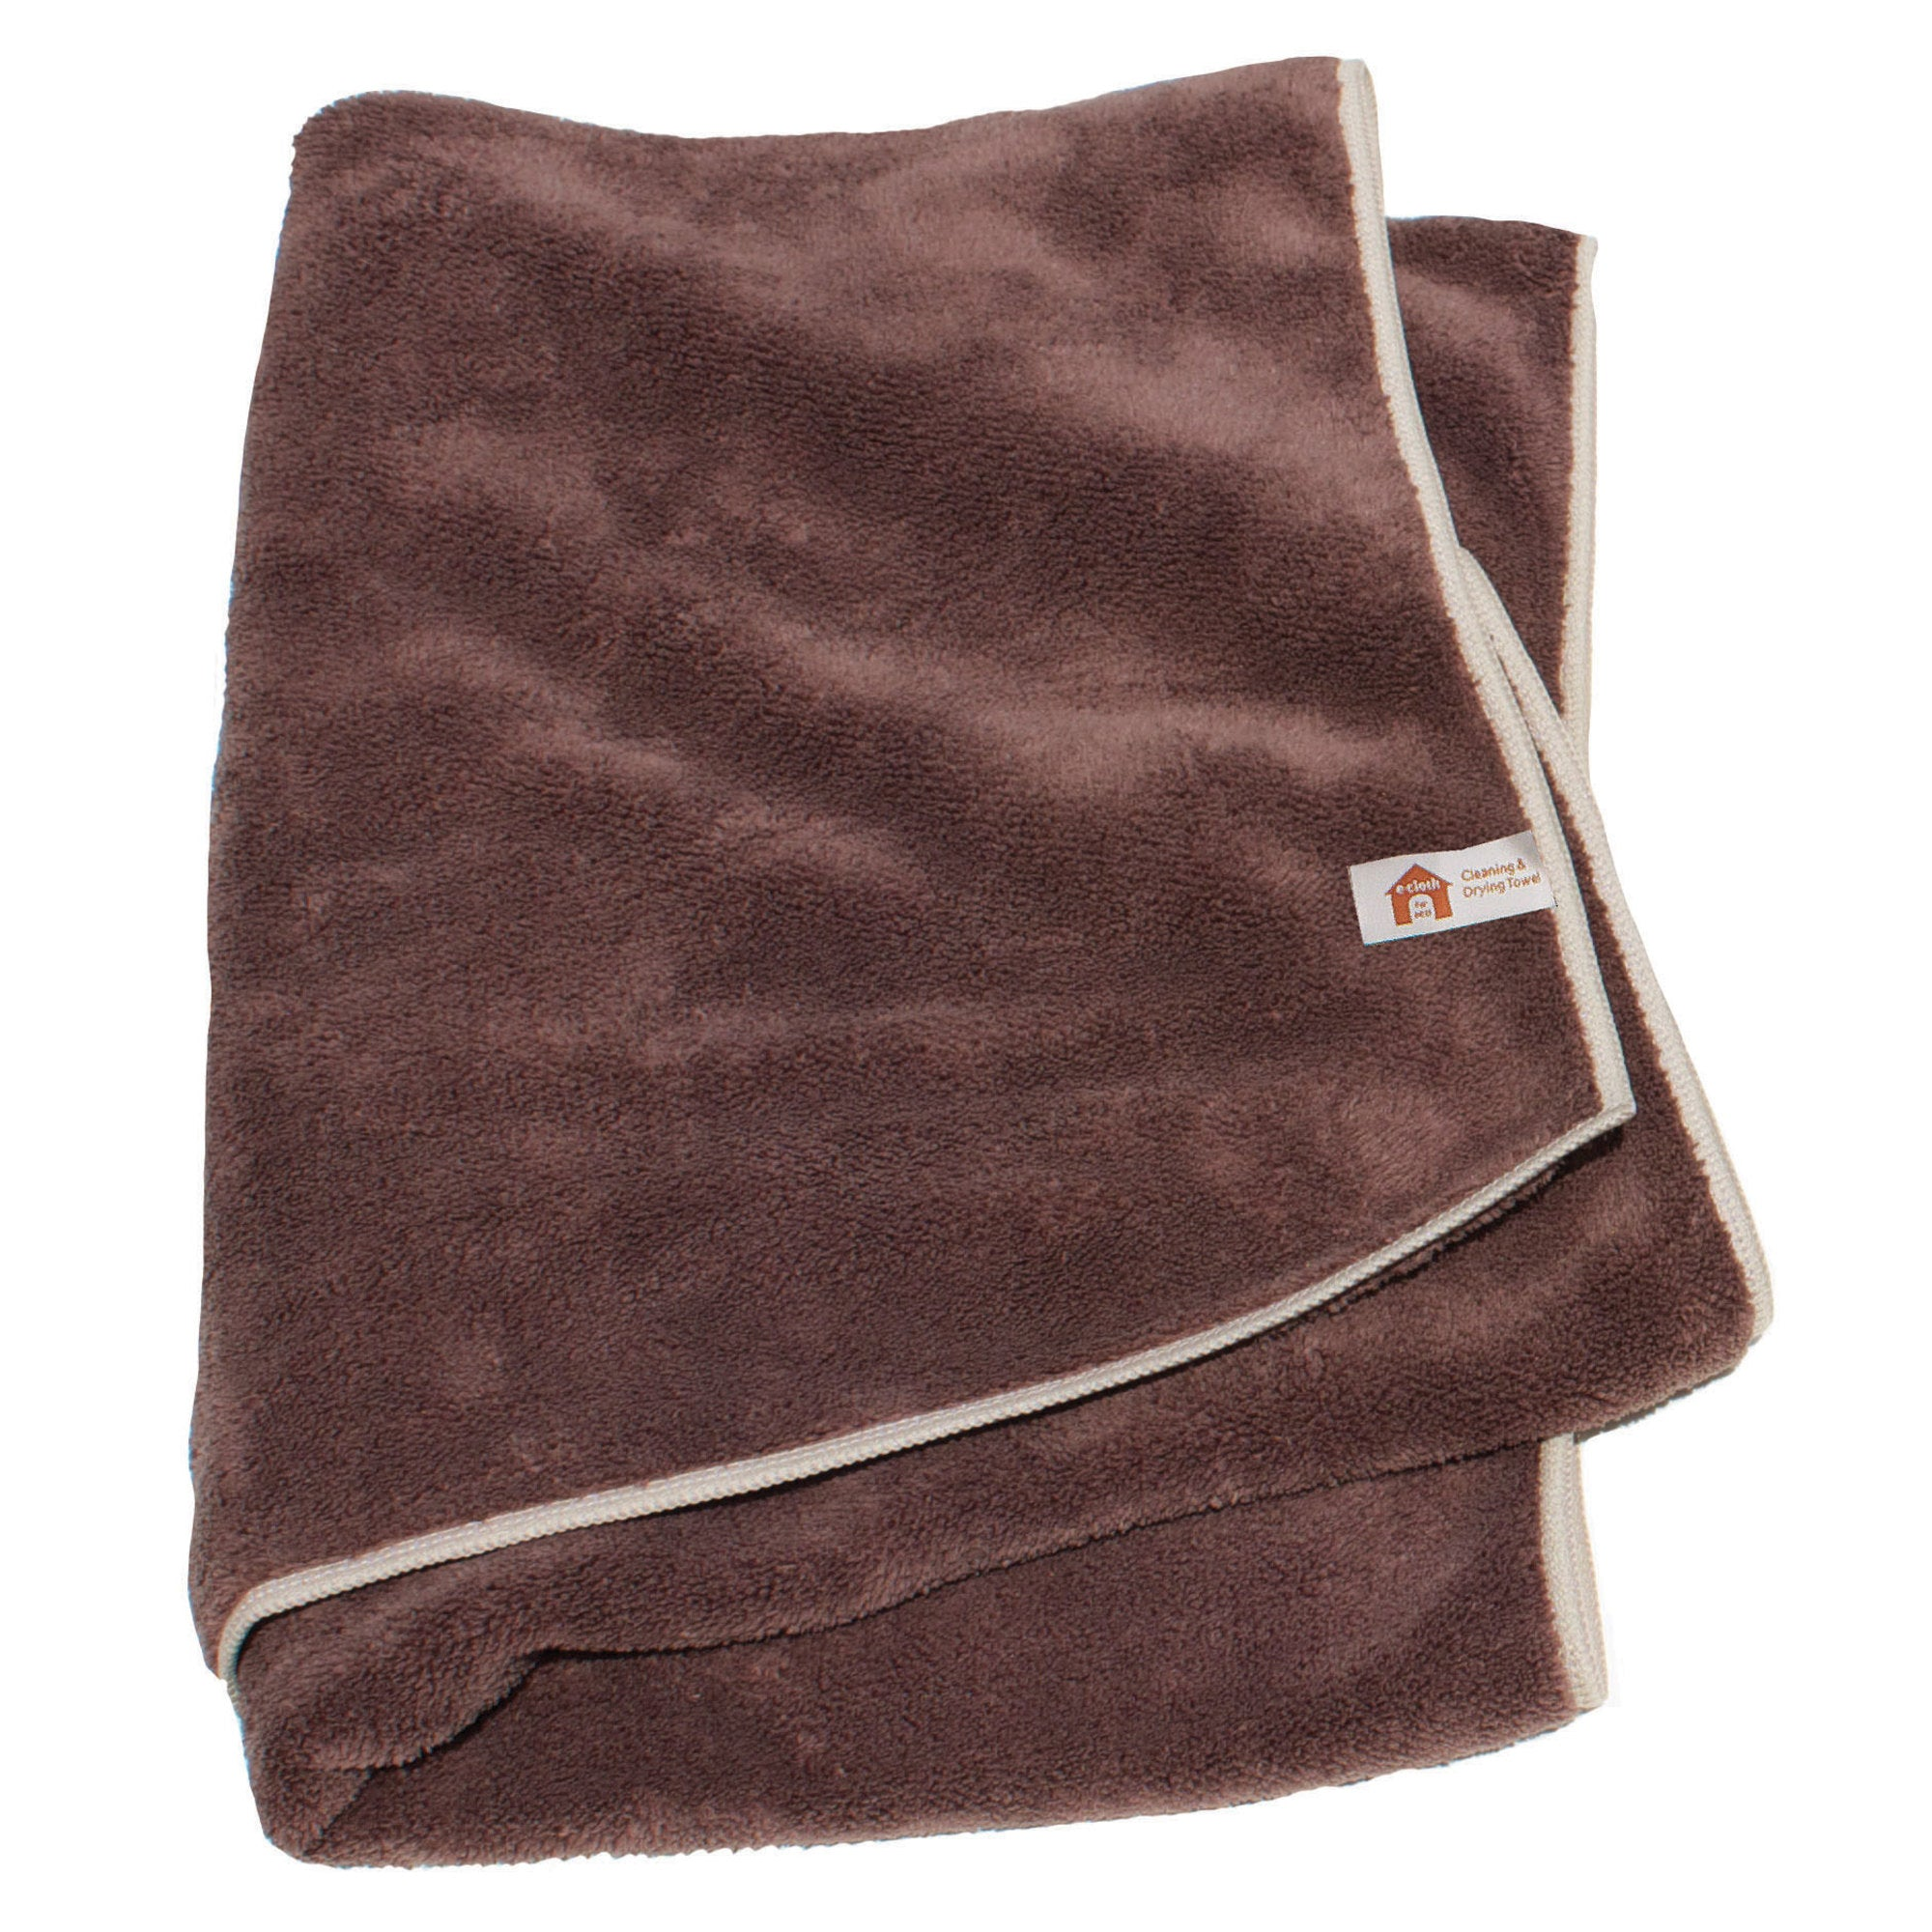 d6f2df497431 Pet Cleaning & Drying Towel - Super-Absorbent Microfiber Towel for Pets,  Animals,